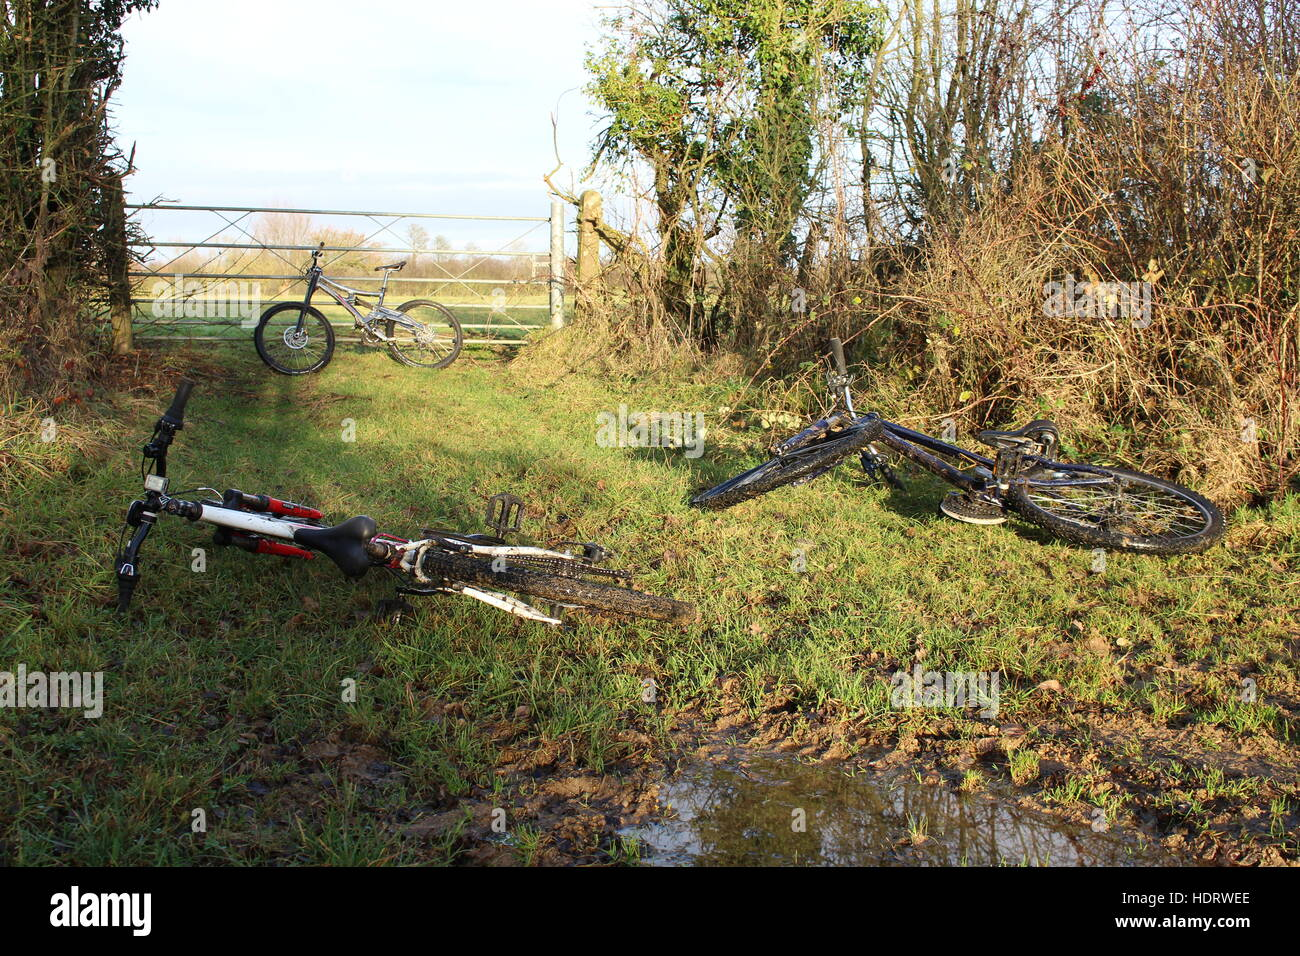 mountain bikes bicycles mtb three leaning resting family ride day out countryside - Stock Image